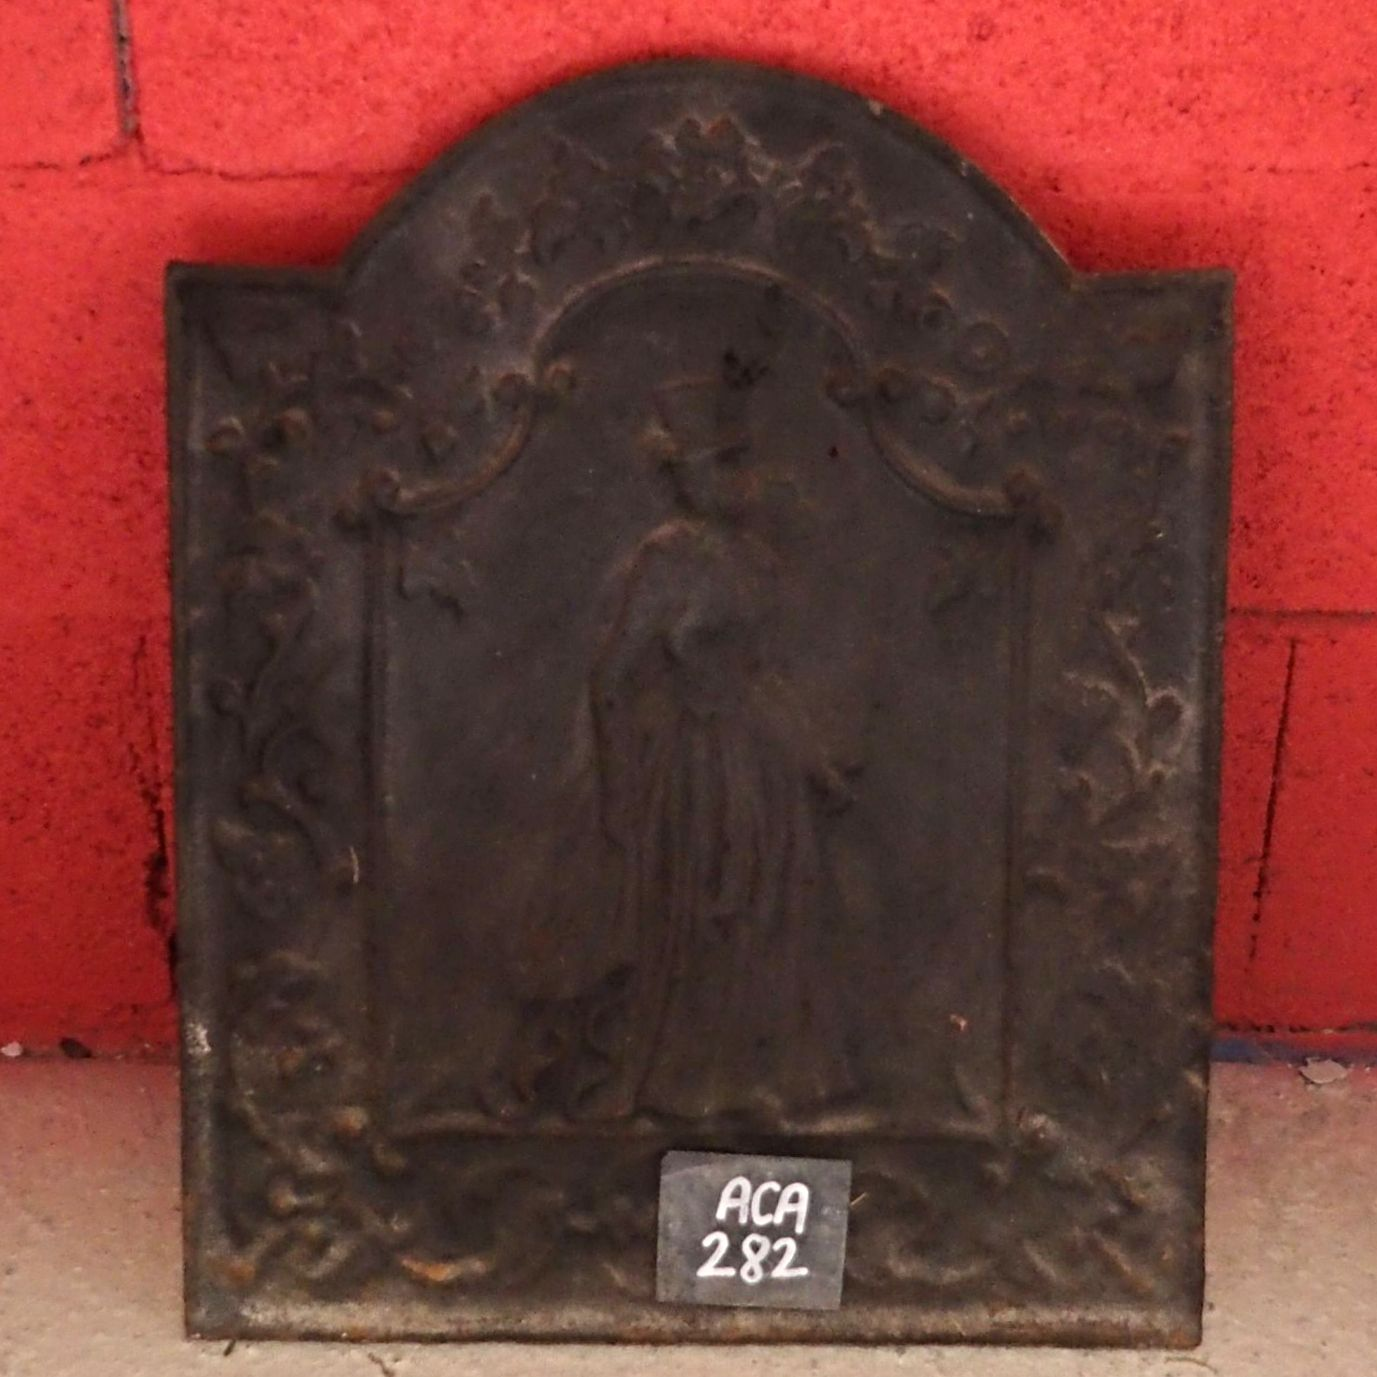 Cast iron fireback representing a woman as well as plants - our old fireplace accessories.